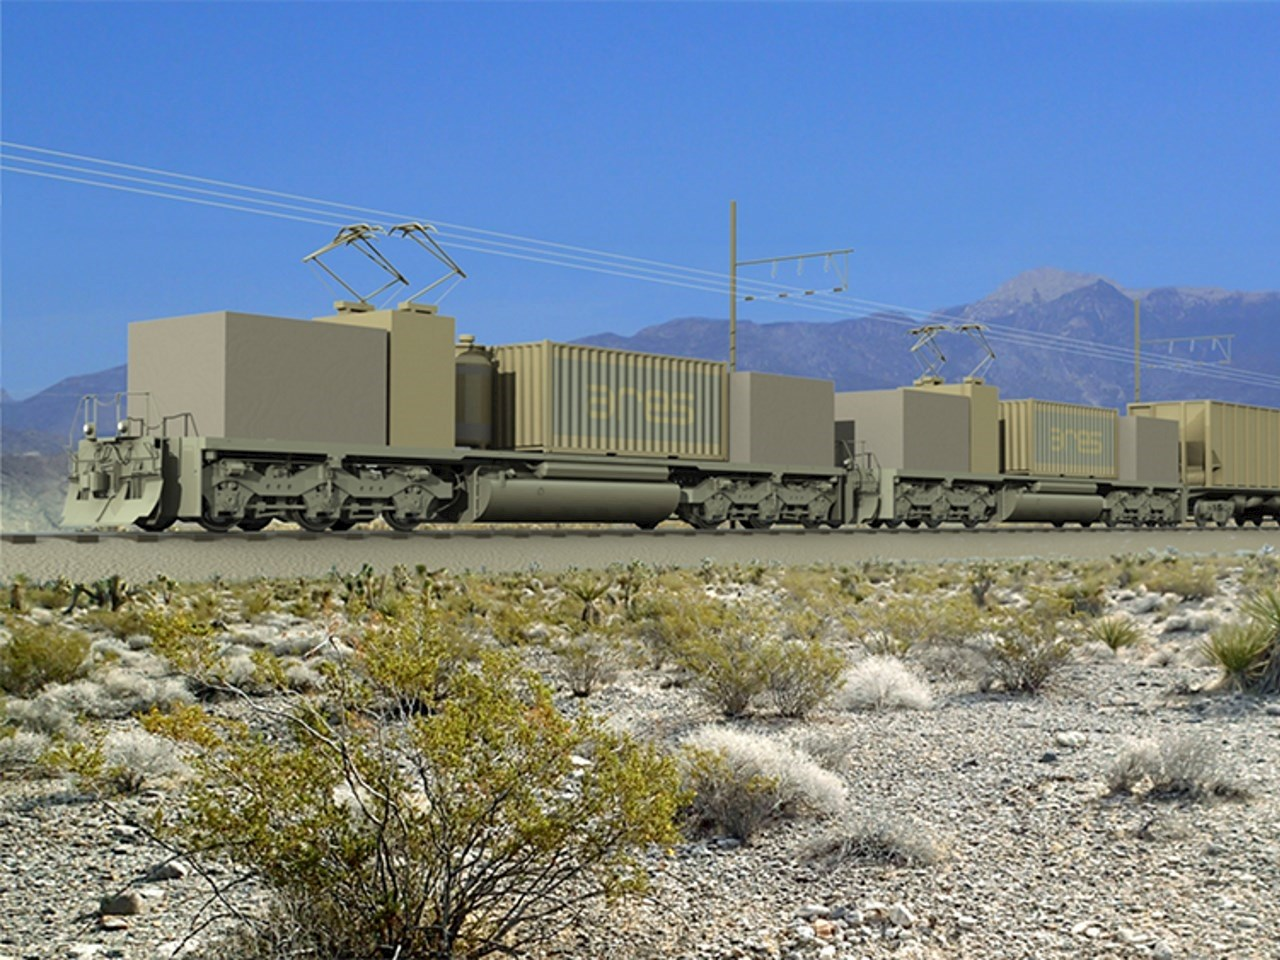 Artist's rendition of the future ARES facility in Pahrump, Nevada